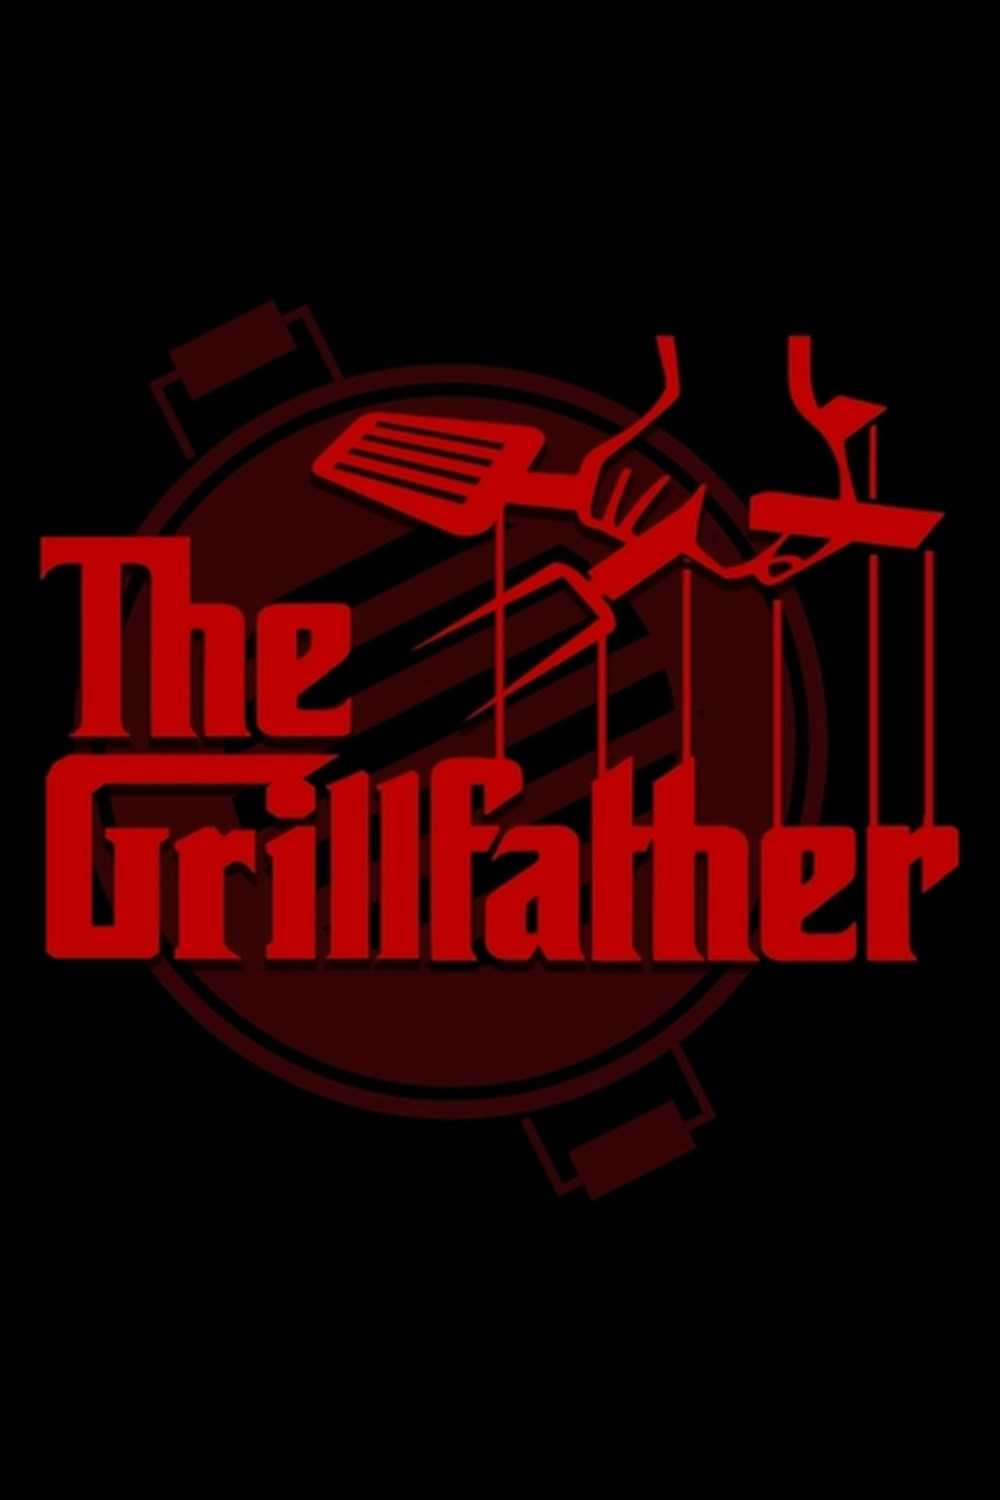 Grillfather Blank Cookbook Journal to Write in Recipes and Notes to Create Your Own Family Favorite